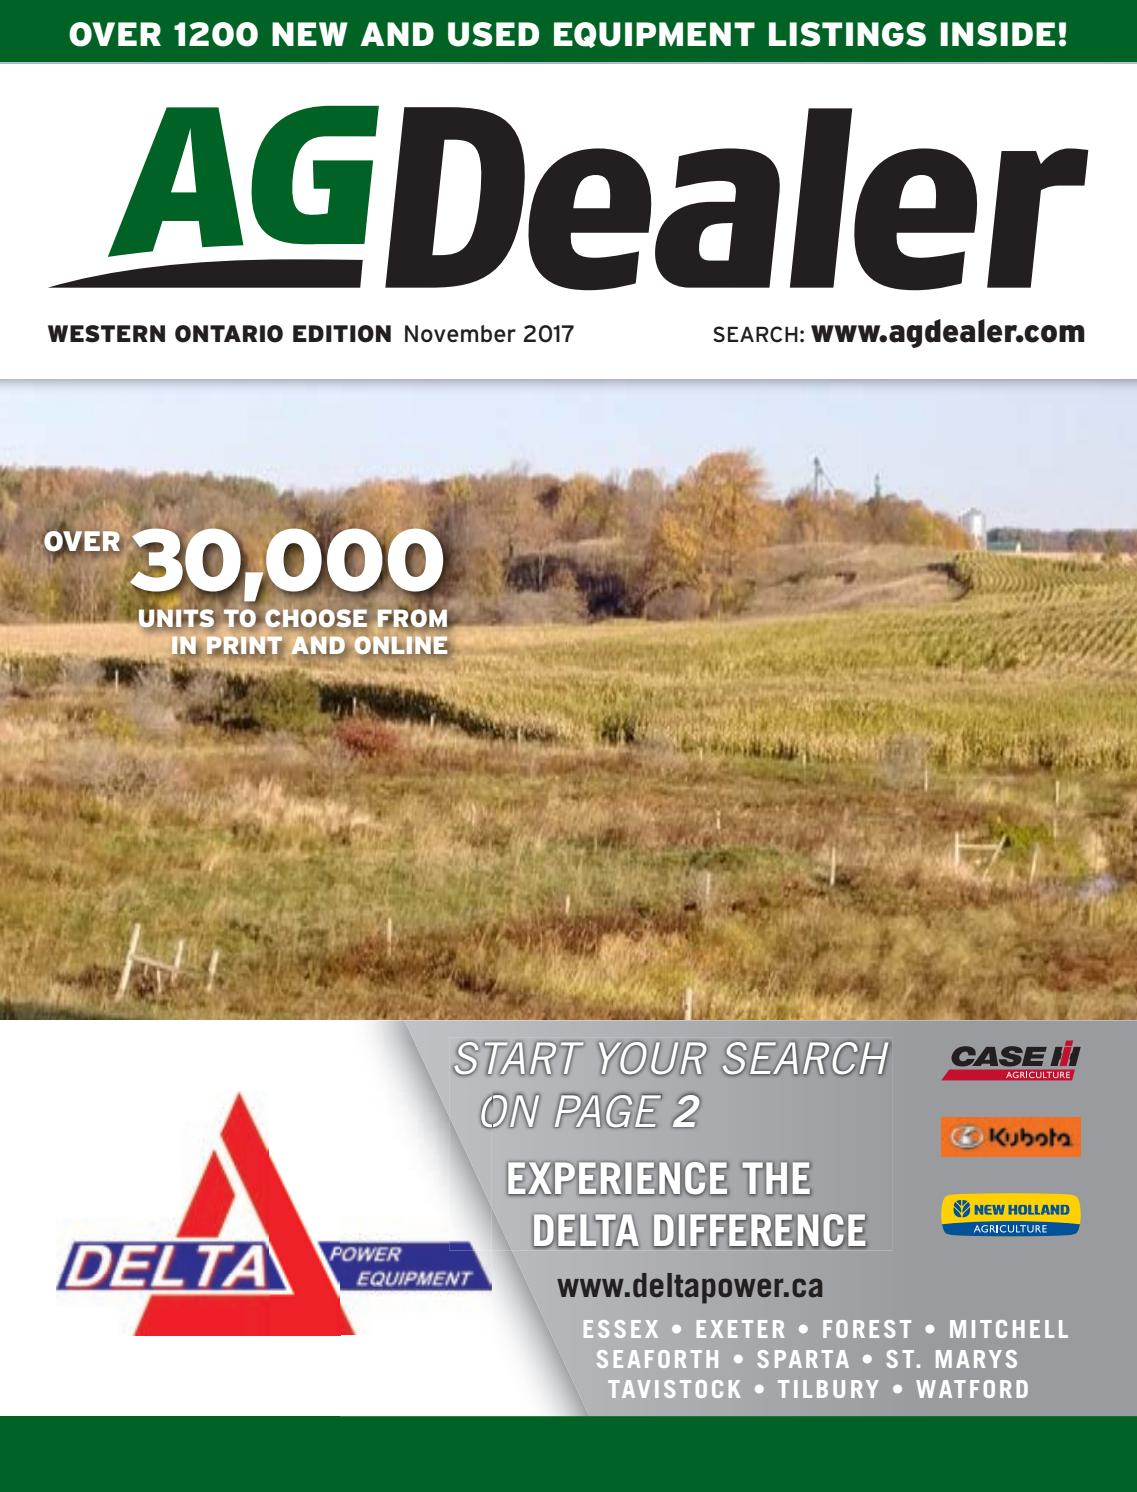 AGDealer Western Ontario Edition, October 30, 2017 by Farm Business  Communications - issuu